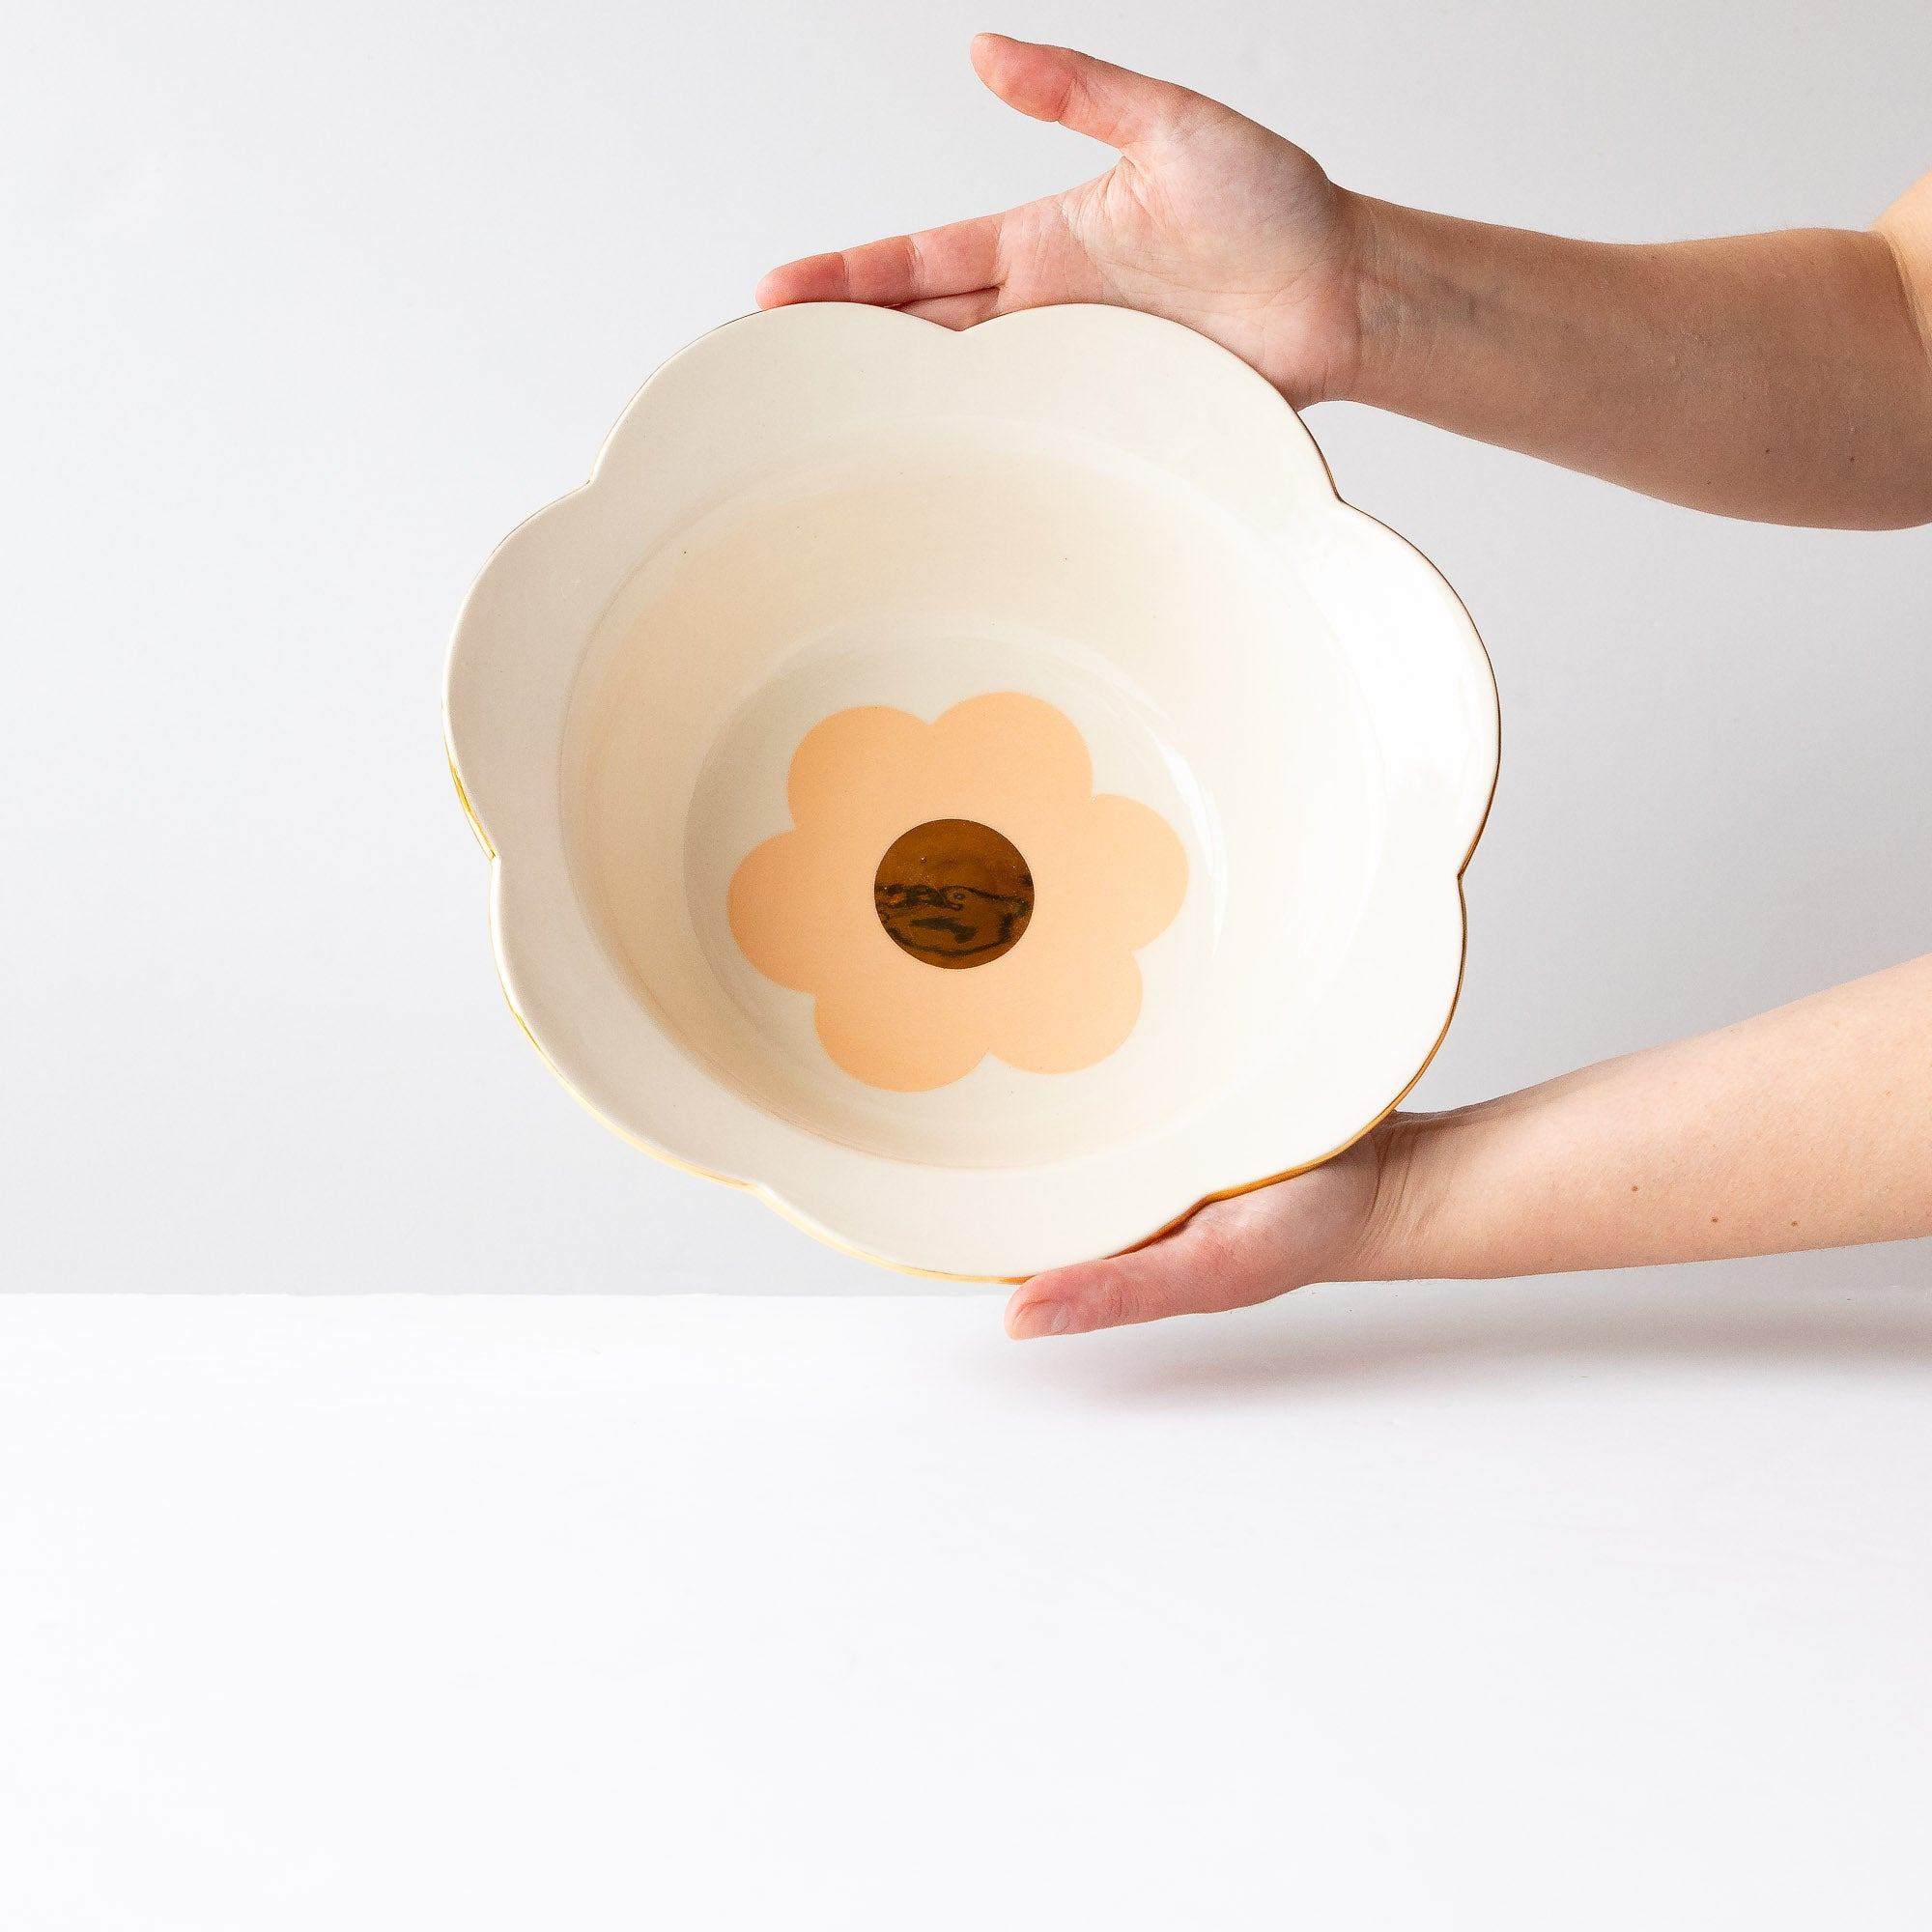 Hands Holding a Handmade Porcelain Tangerine Daisy Salad Bowl with Gold - Sold by Chic & Basta